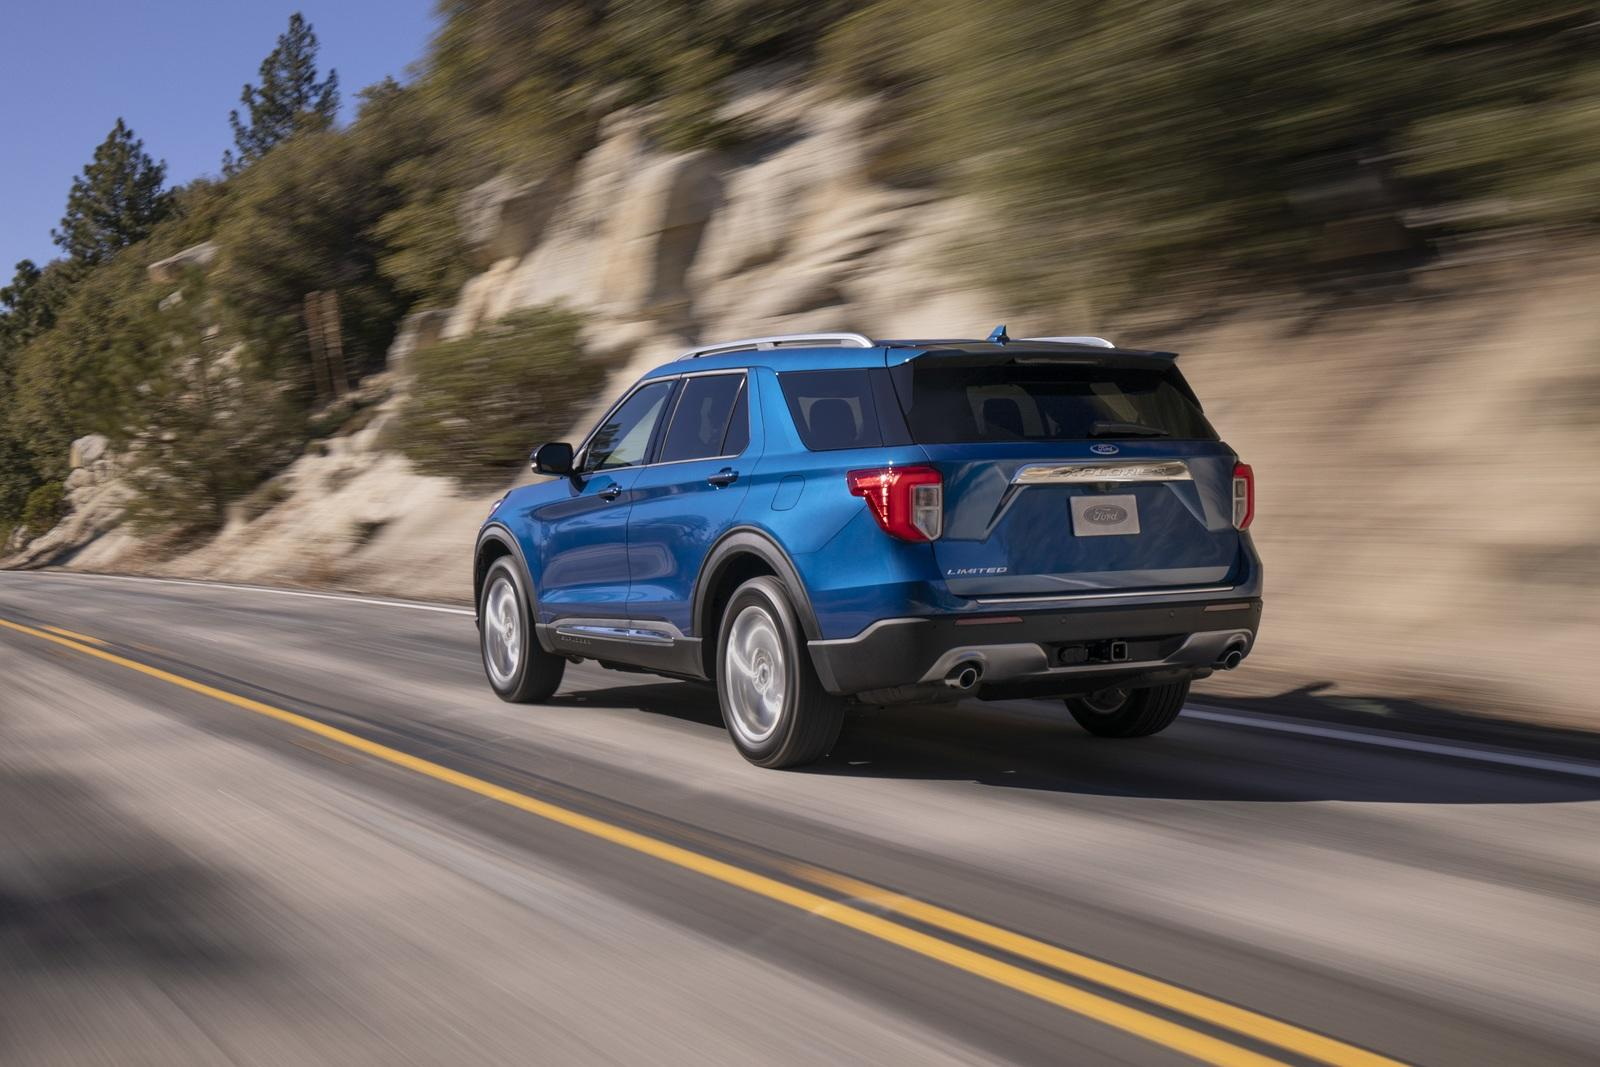 2020 Ford Explorer Exterior Rear View